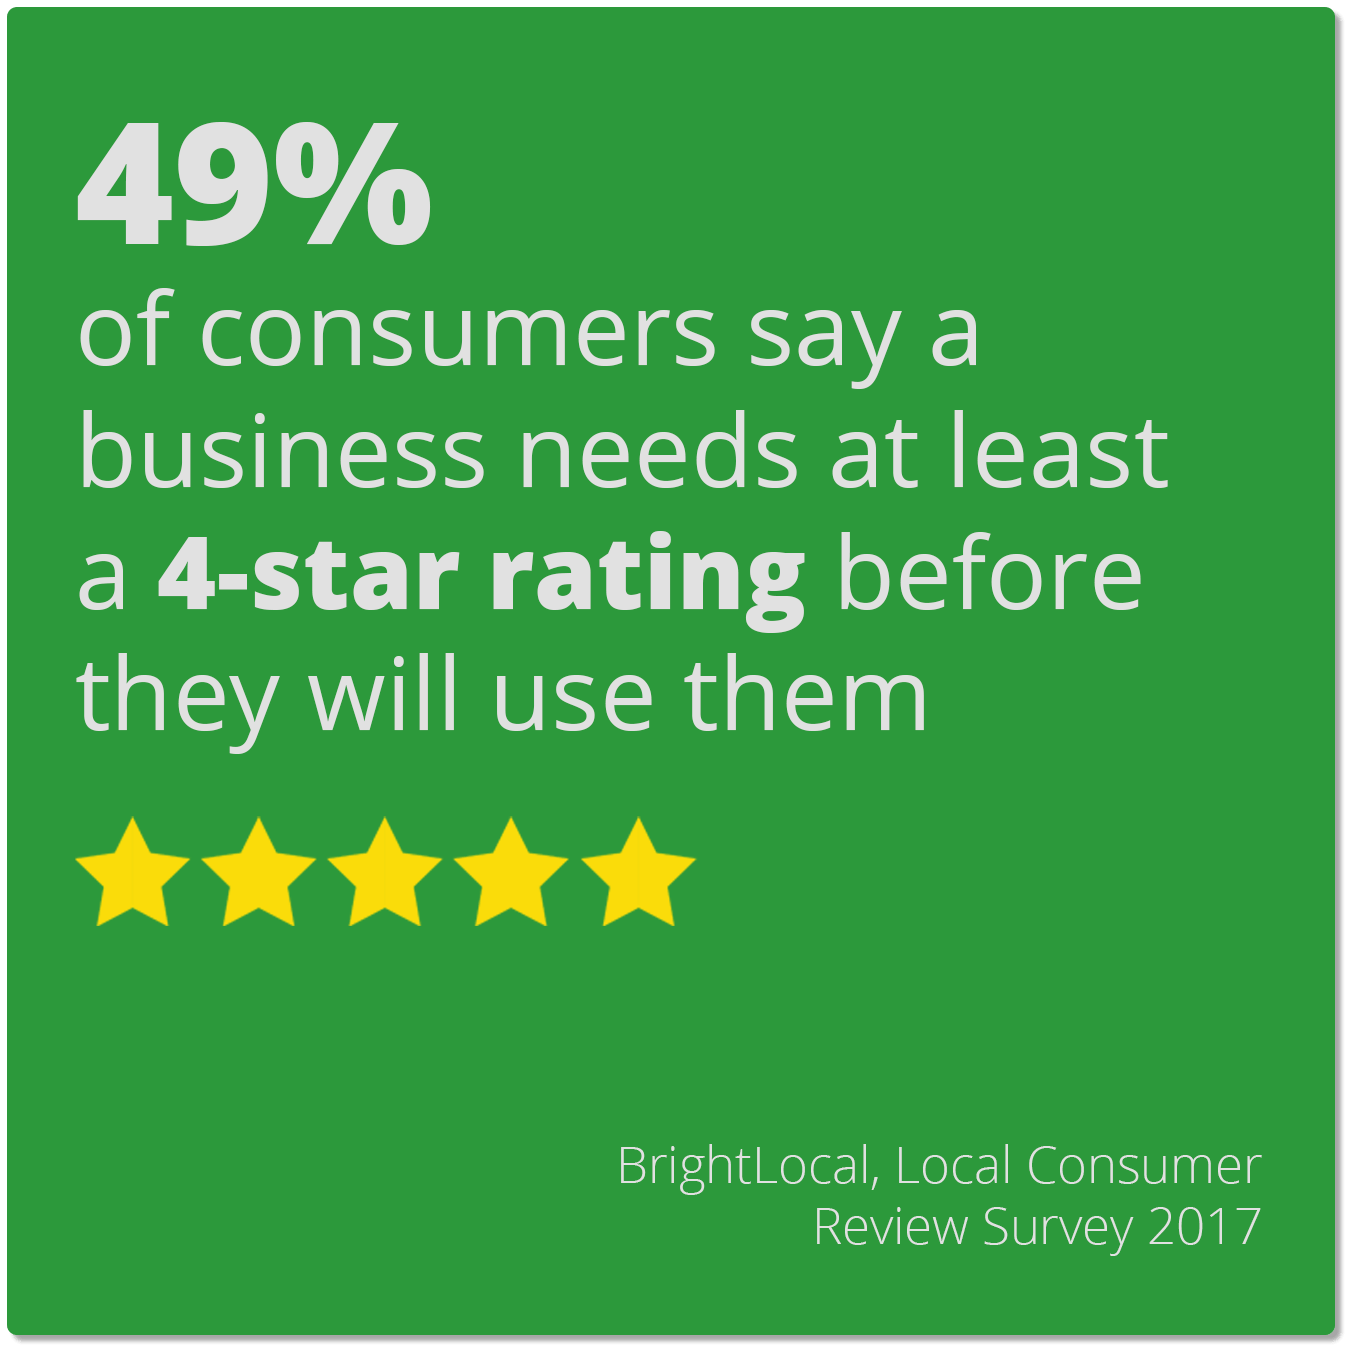 49% of consumers say a business needs at least a 4-star rating before they would use them